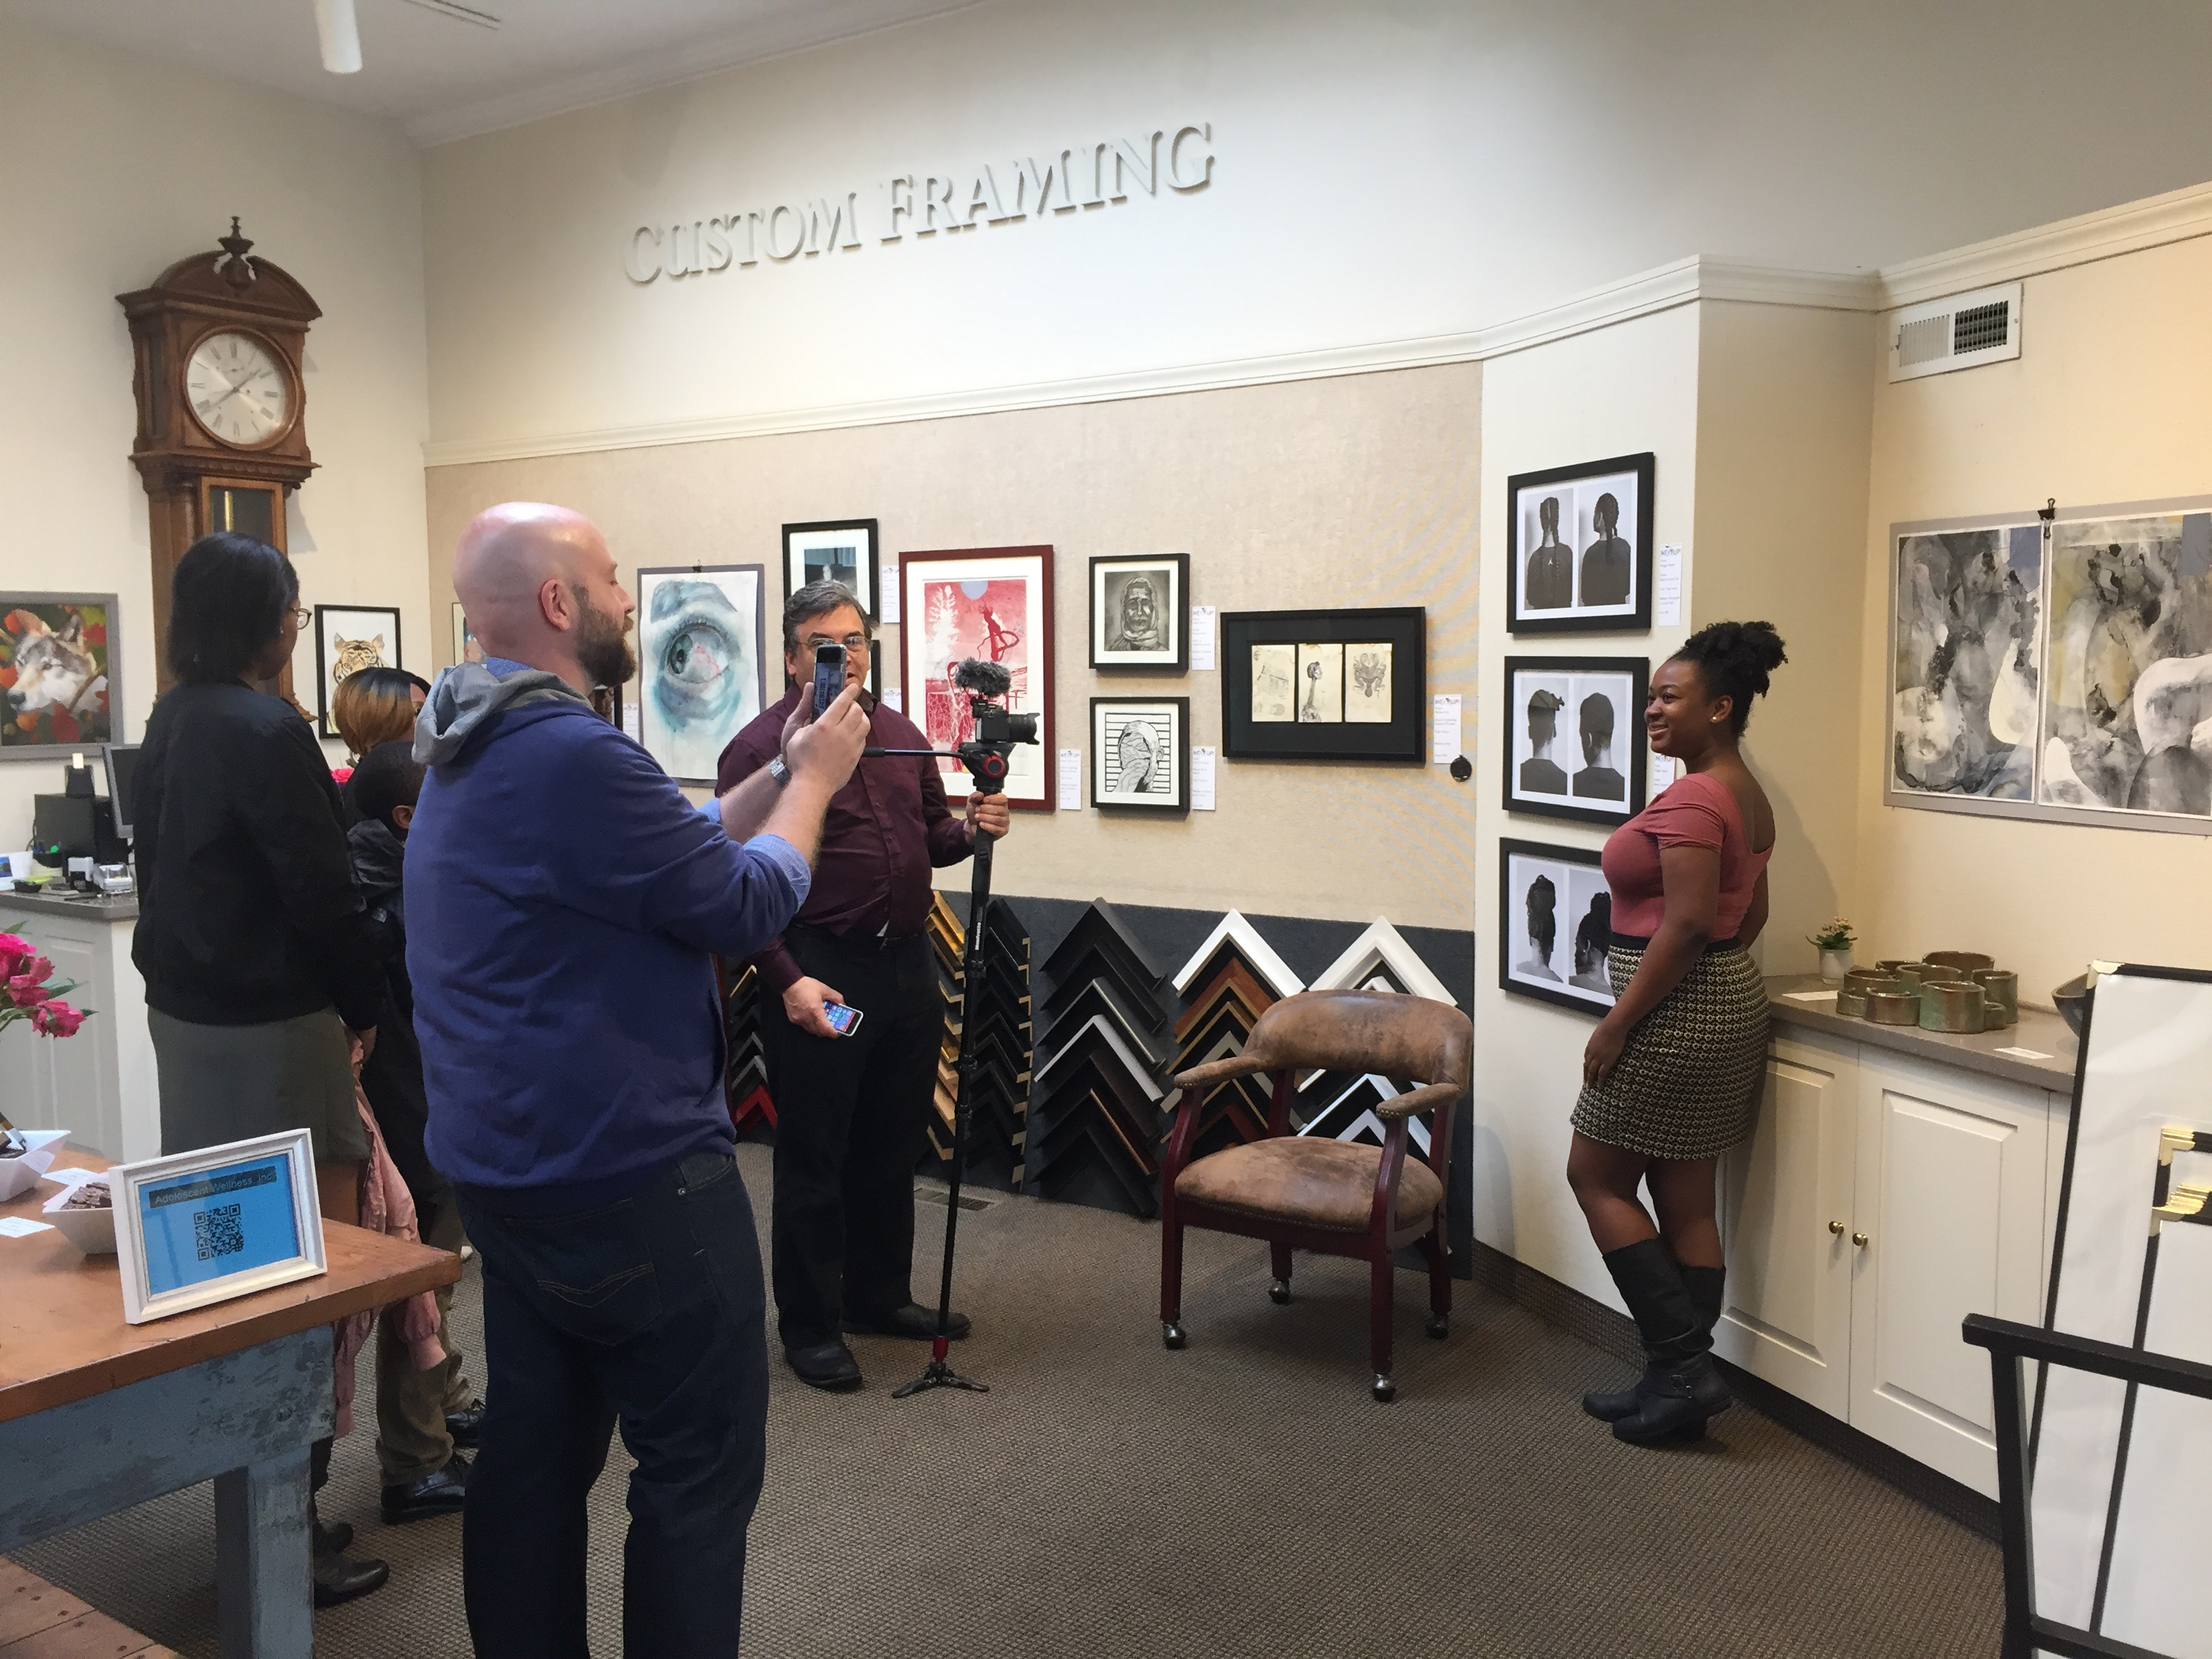 Next Up! 2017 Juried Art Exhibition and Reception at Page Waterman Fine Framing, Wellesley